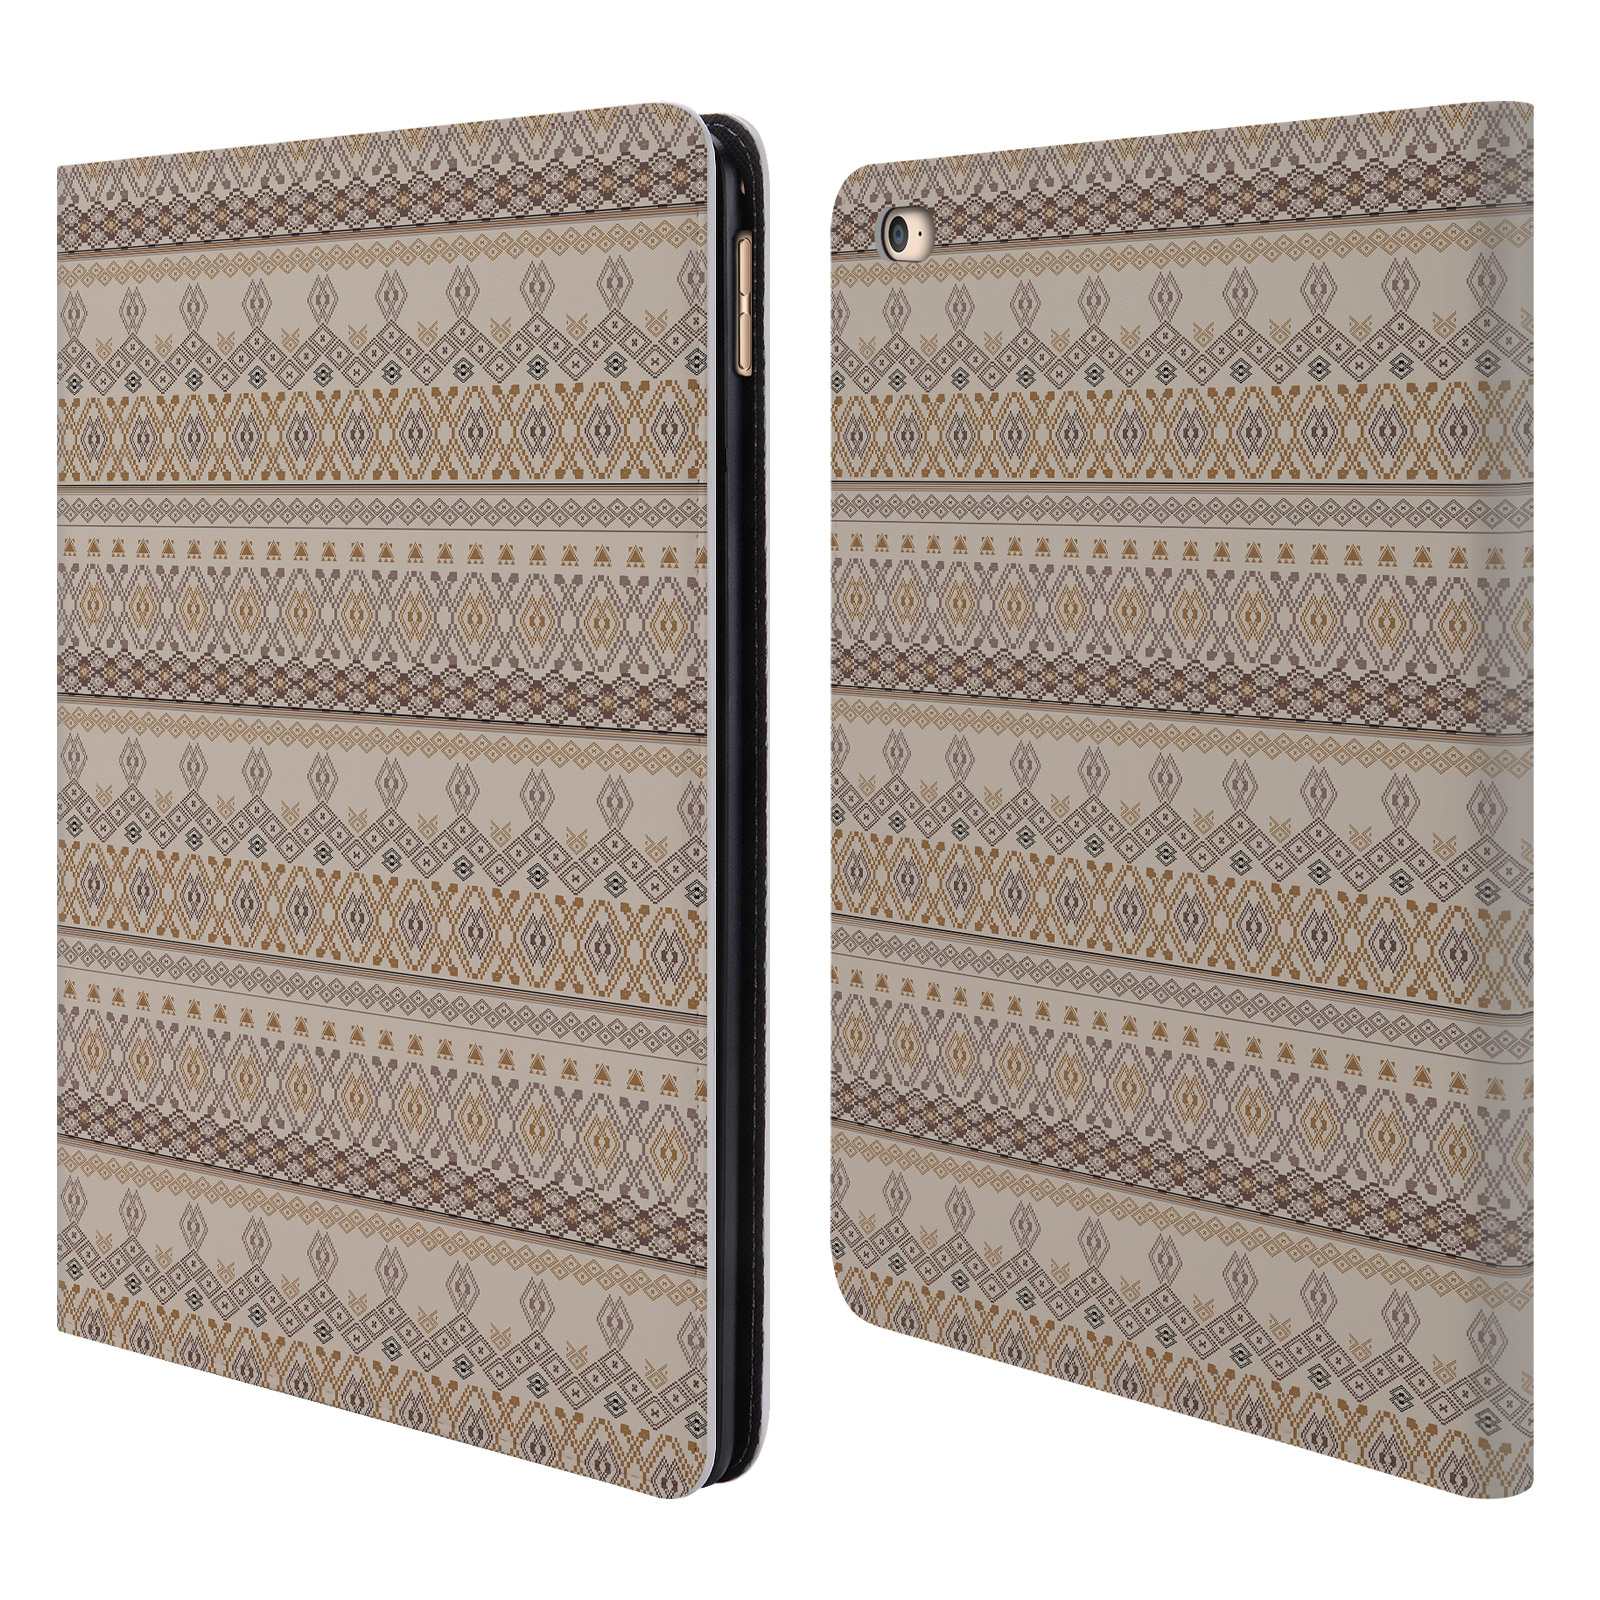 Leather Book Cover Pattern : Official iuliia lelekova patterns leather book wallet case